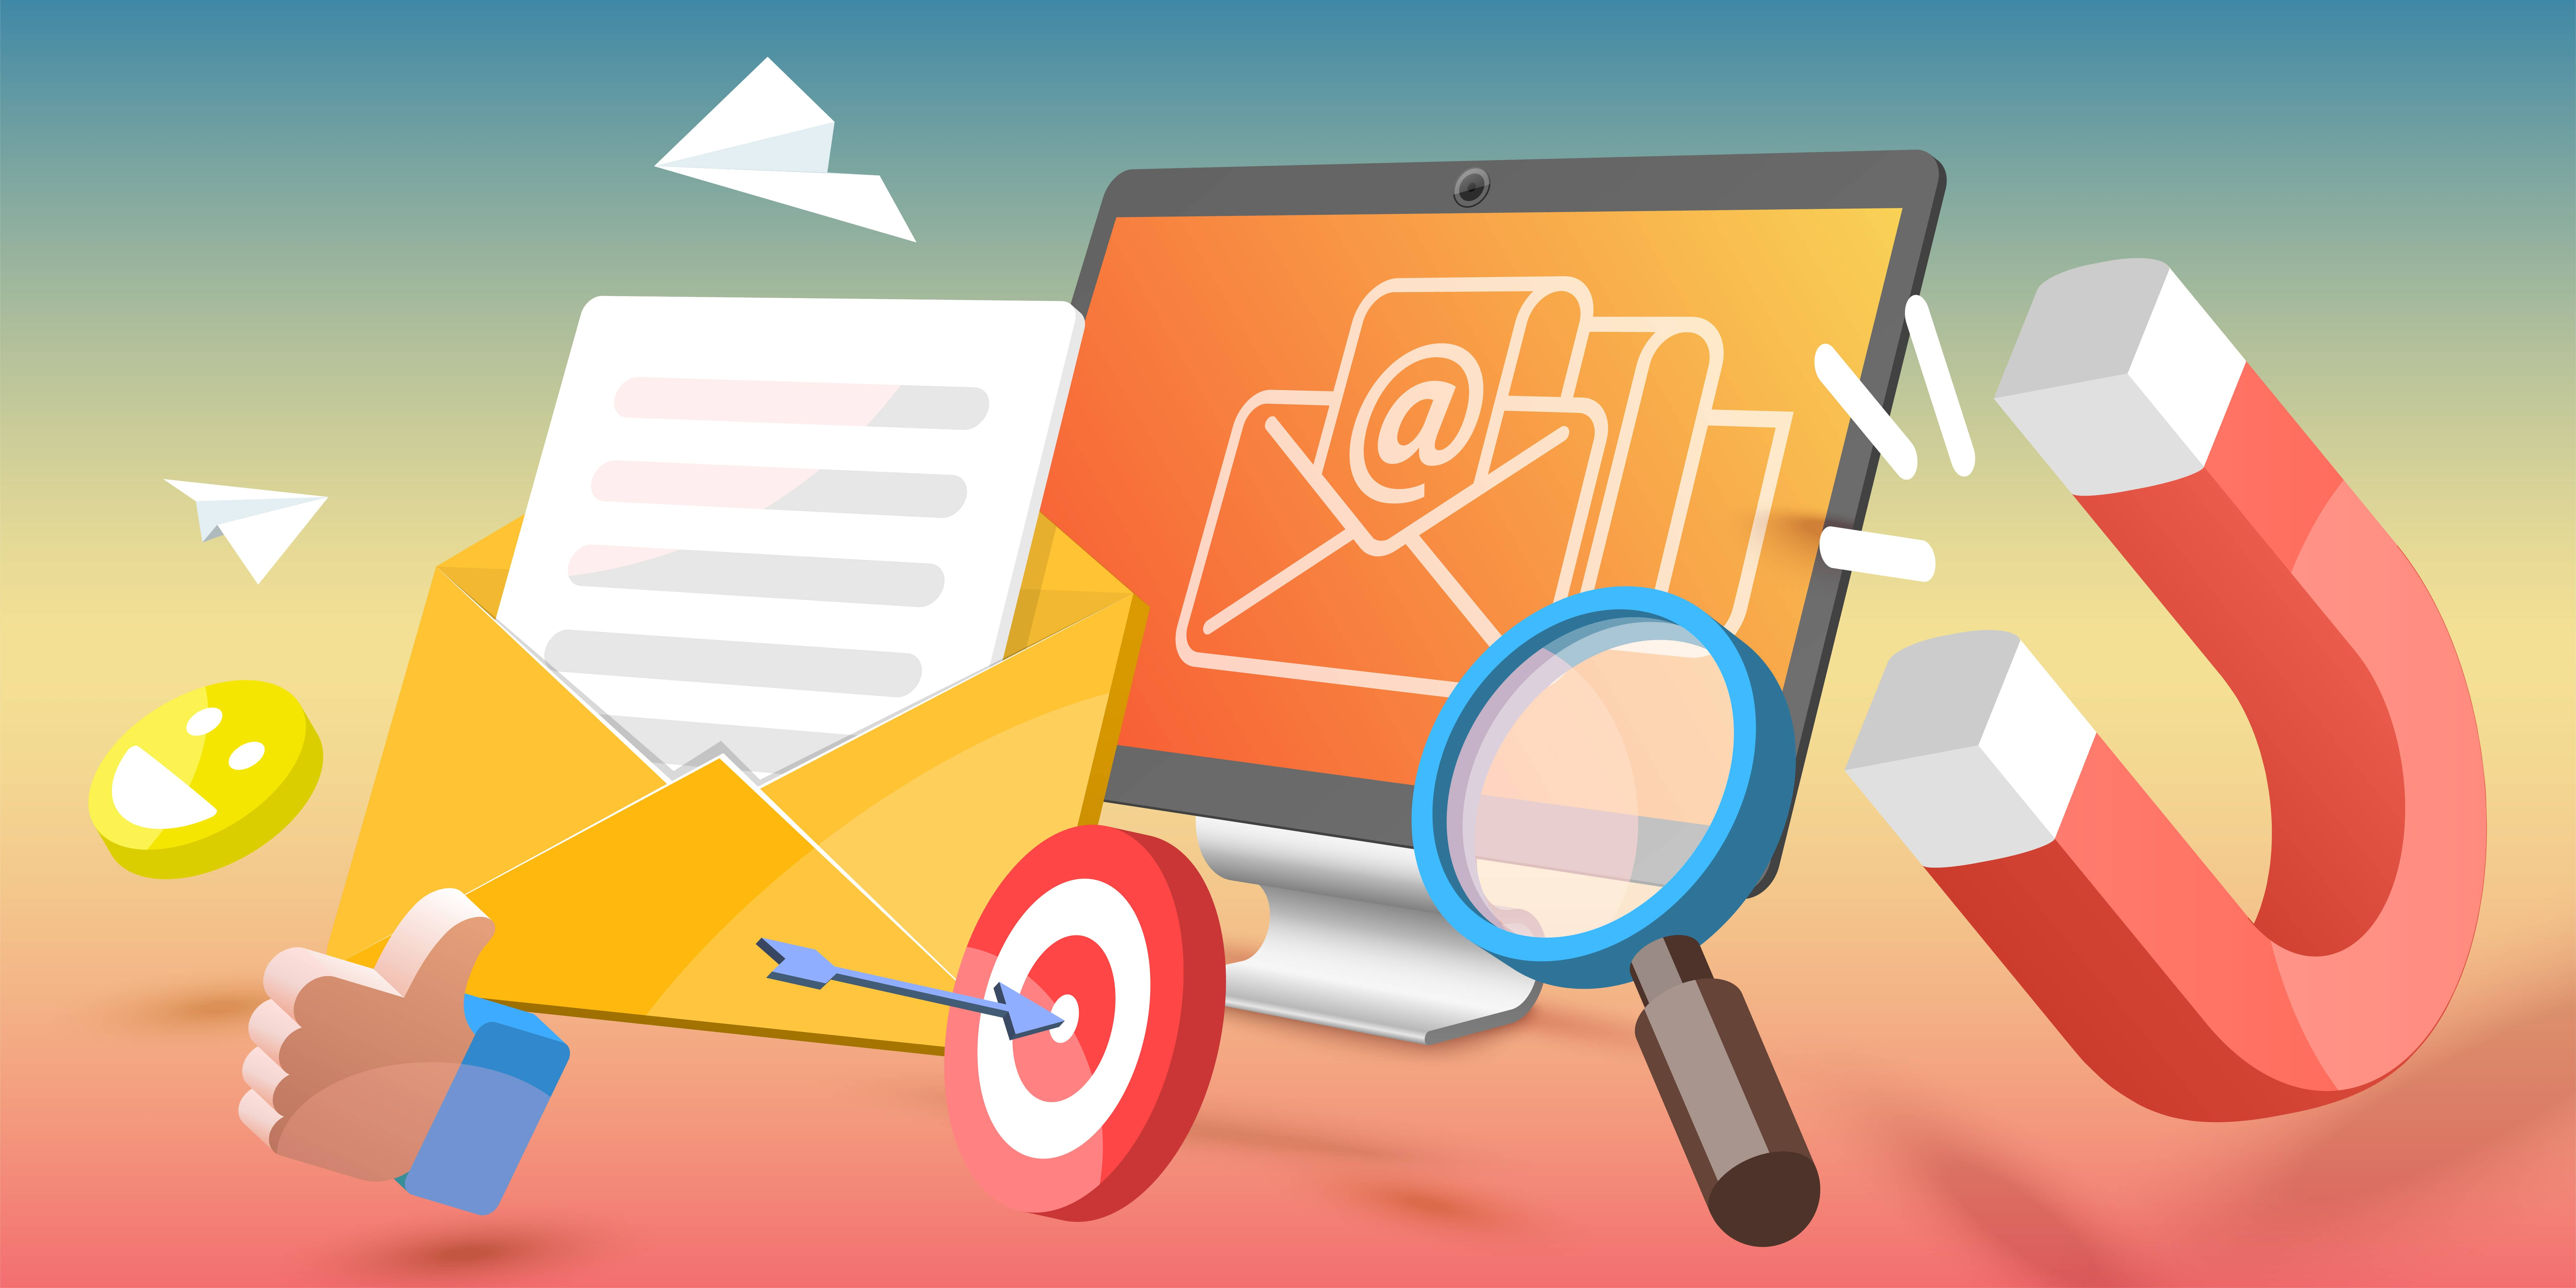 Illustration symbolizing inbound marketing. A computer, magnifying glass, magnet, envelope, target and arrow, thumbs up, smiley face and paper airplanes cover the image